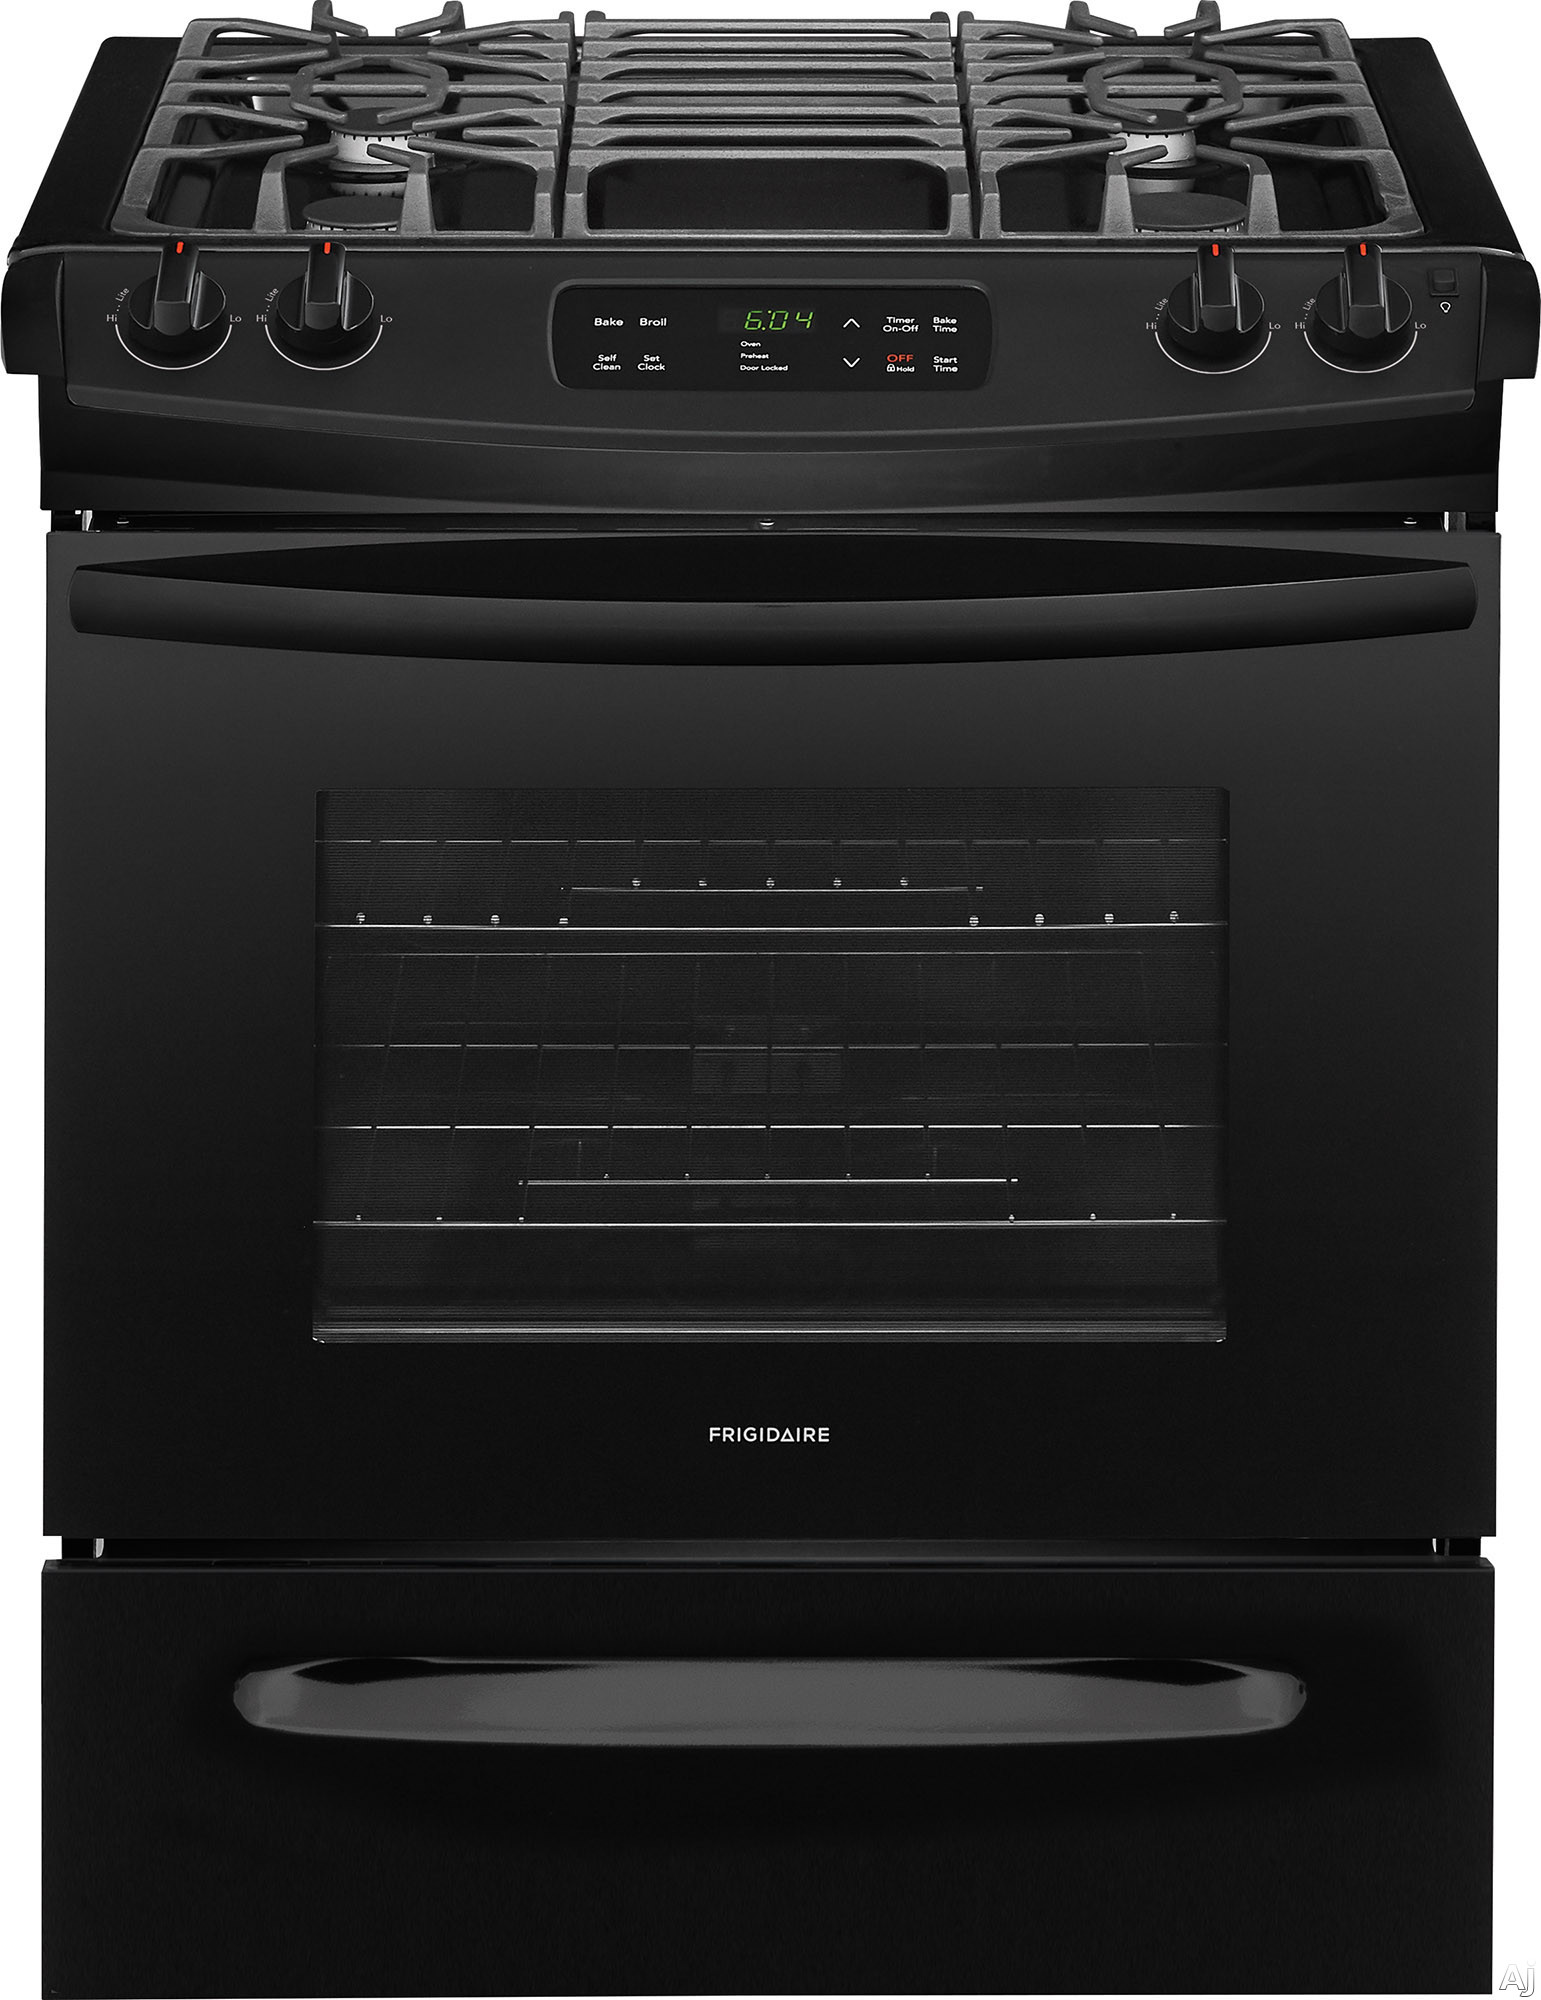 "Frigidaire FFGS3026TB 30 Inch Slide-In Gas Range with One-Touch Self Clean, Even Baking Technology, Continuous Grates, Store-Moreâ""¢ Storage Drawer, Oven Rack Handles, Delay Start Baking and 4.5 c"